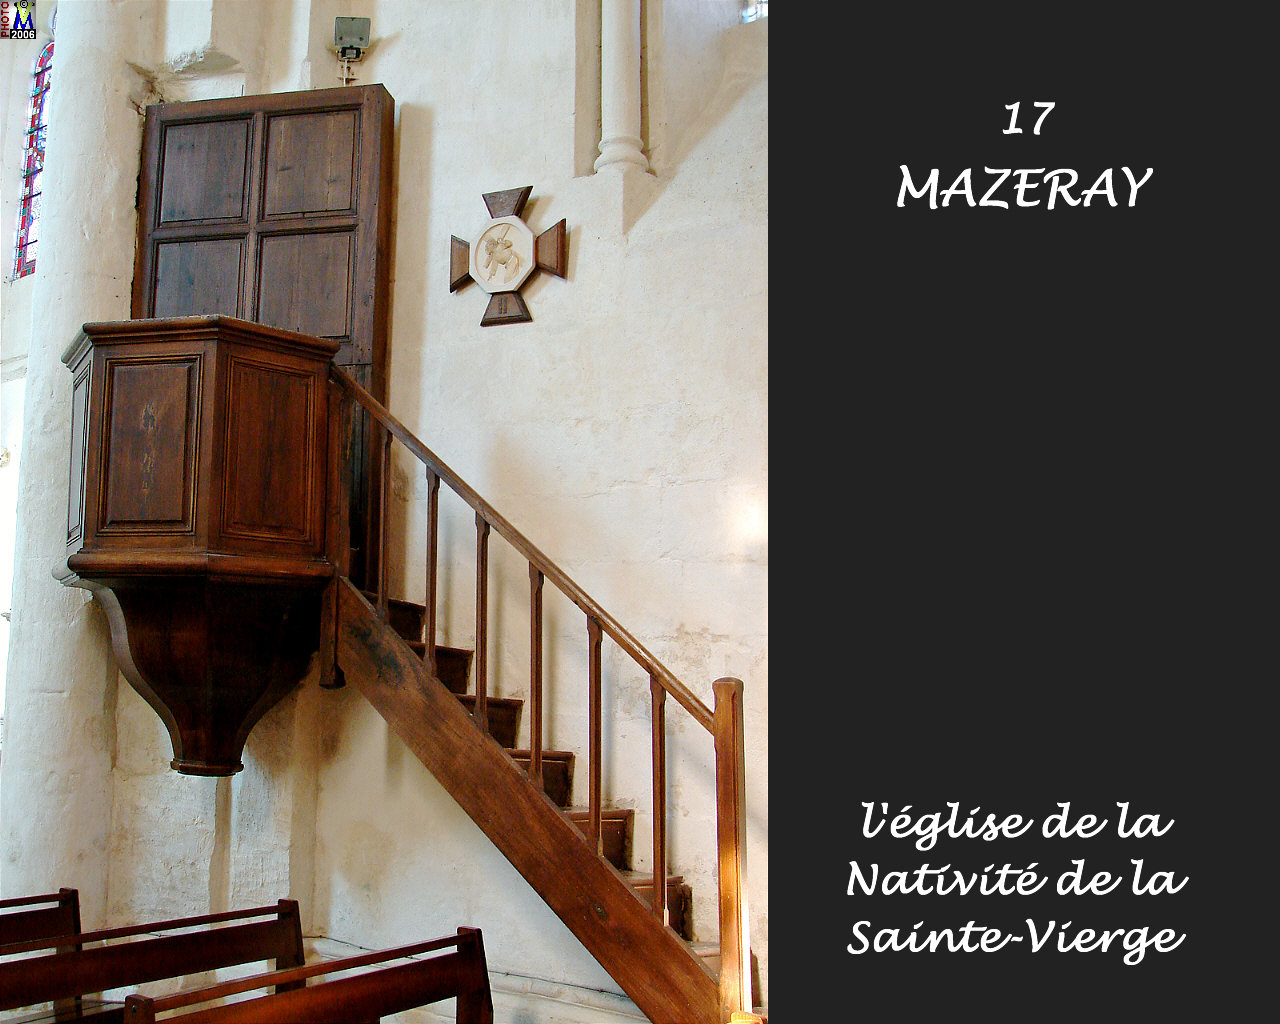 17MAZERAY_eglise_250.jpg